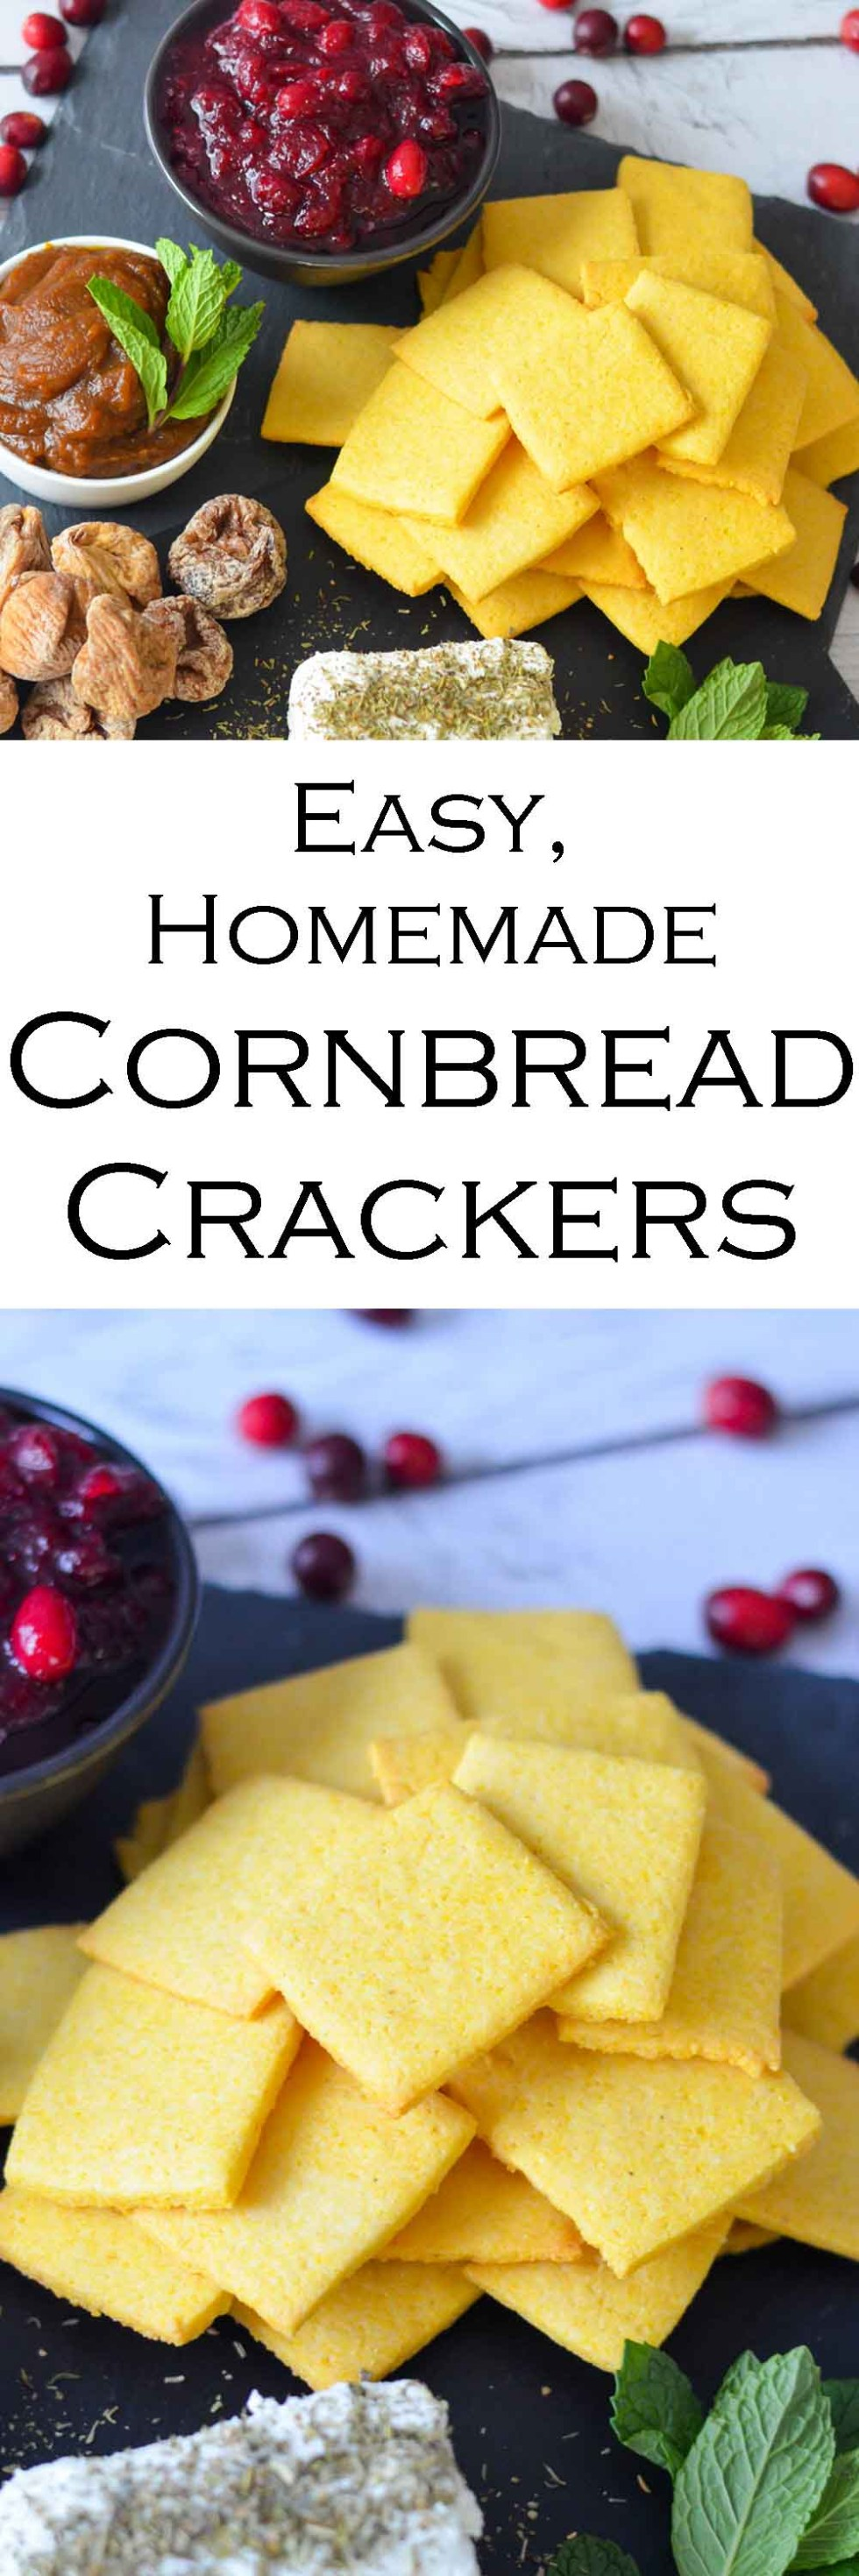 Easy Cornbread Crackers Recipe #LMrecipes #pumpkin #thanksgiving #christmas #holidayparty #holidaypartyfood #traderjoes #pumpkin #appetizers #homesteading #foodblog #foodblogger